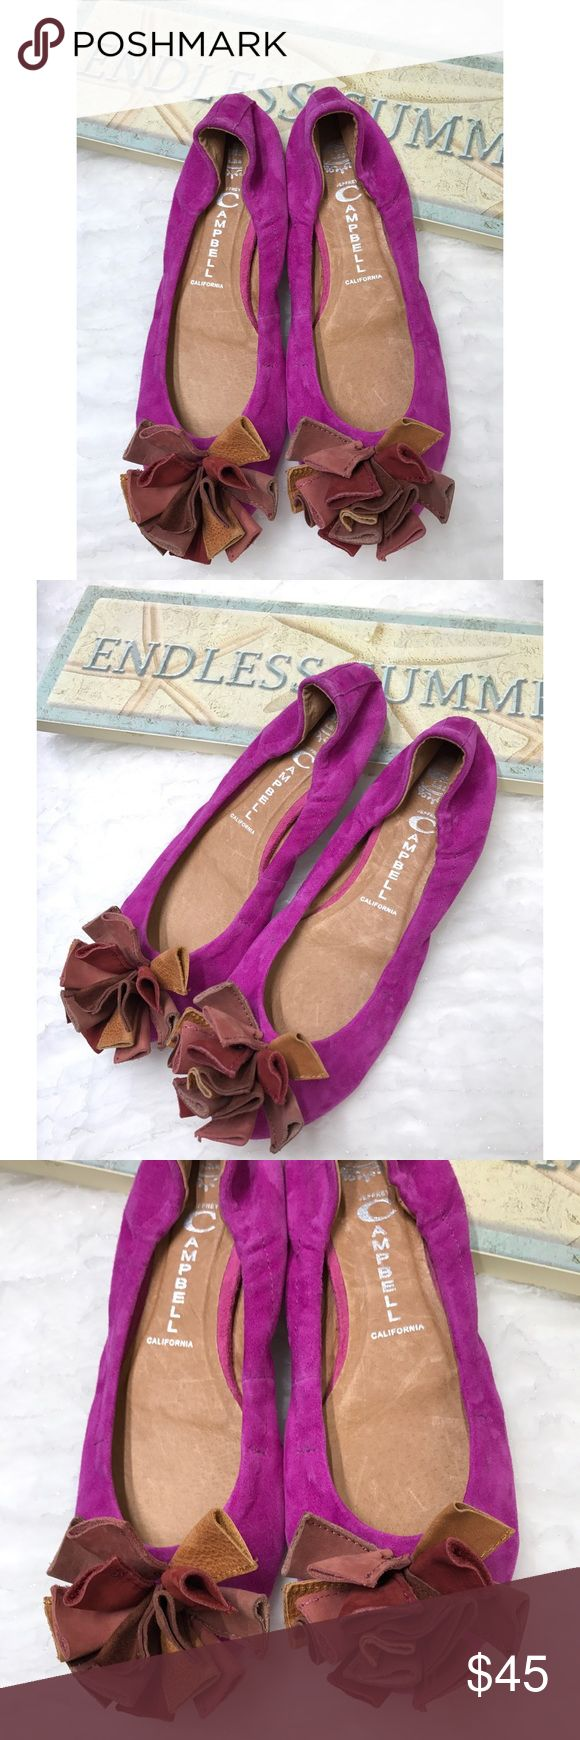 Jeffrey Campbell Pink/ Purple Suede Flats Beautiful and colorful ballet flats. Color is a very vibrant pink with a hint of purple and will definitely make you stand out. Perfect touch to your outfit. These shoes are in excellent like new conditions. Jeffrey Campbell Shoes Flats & Loafers